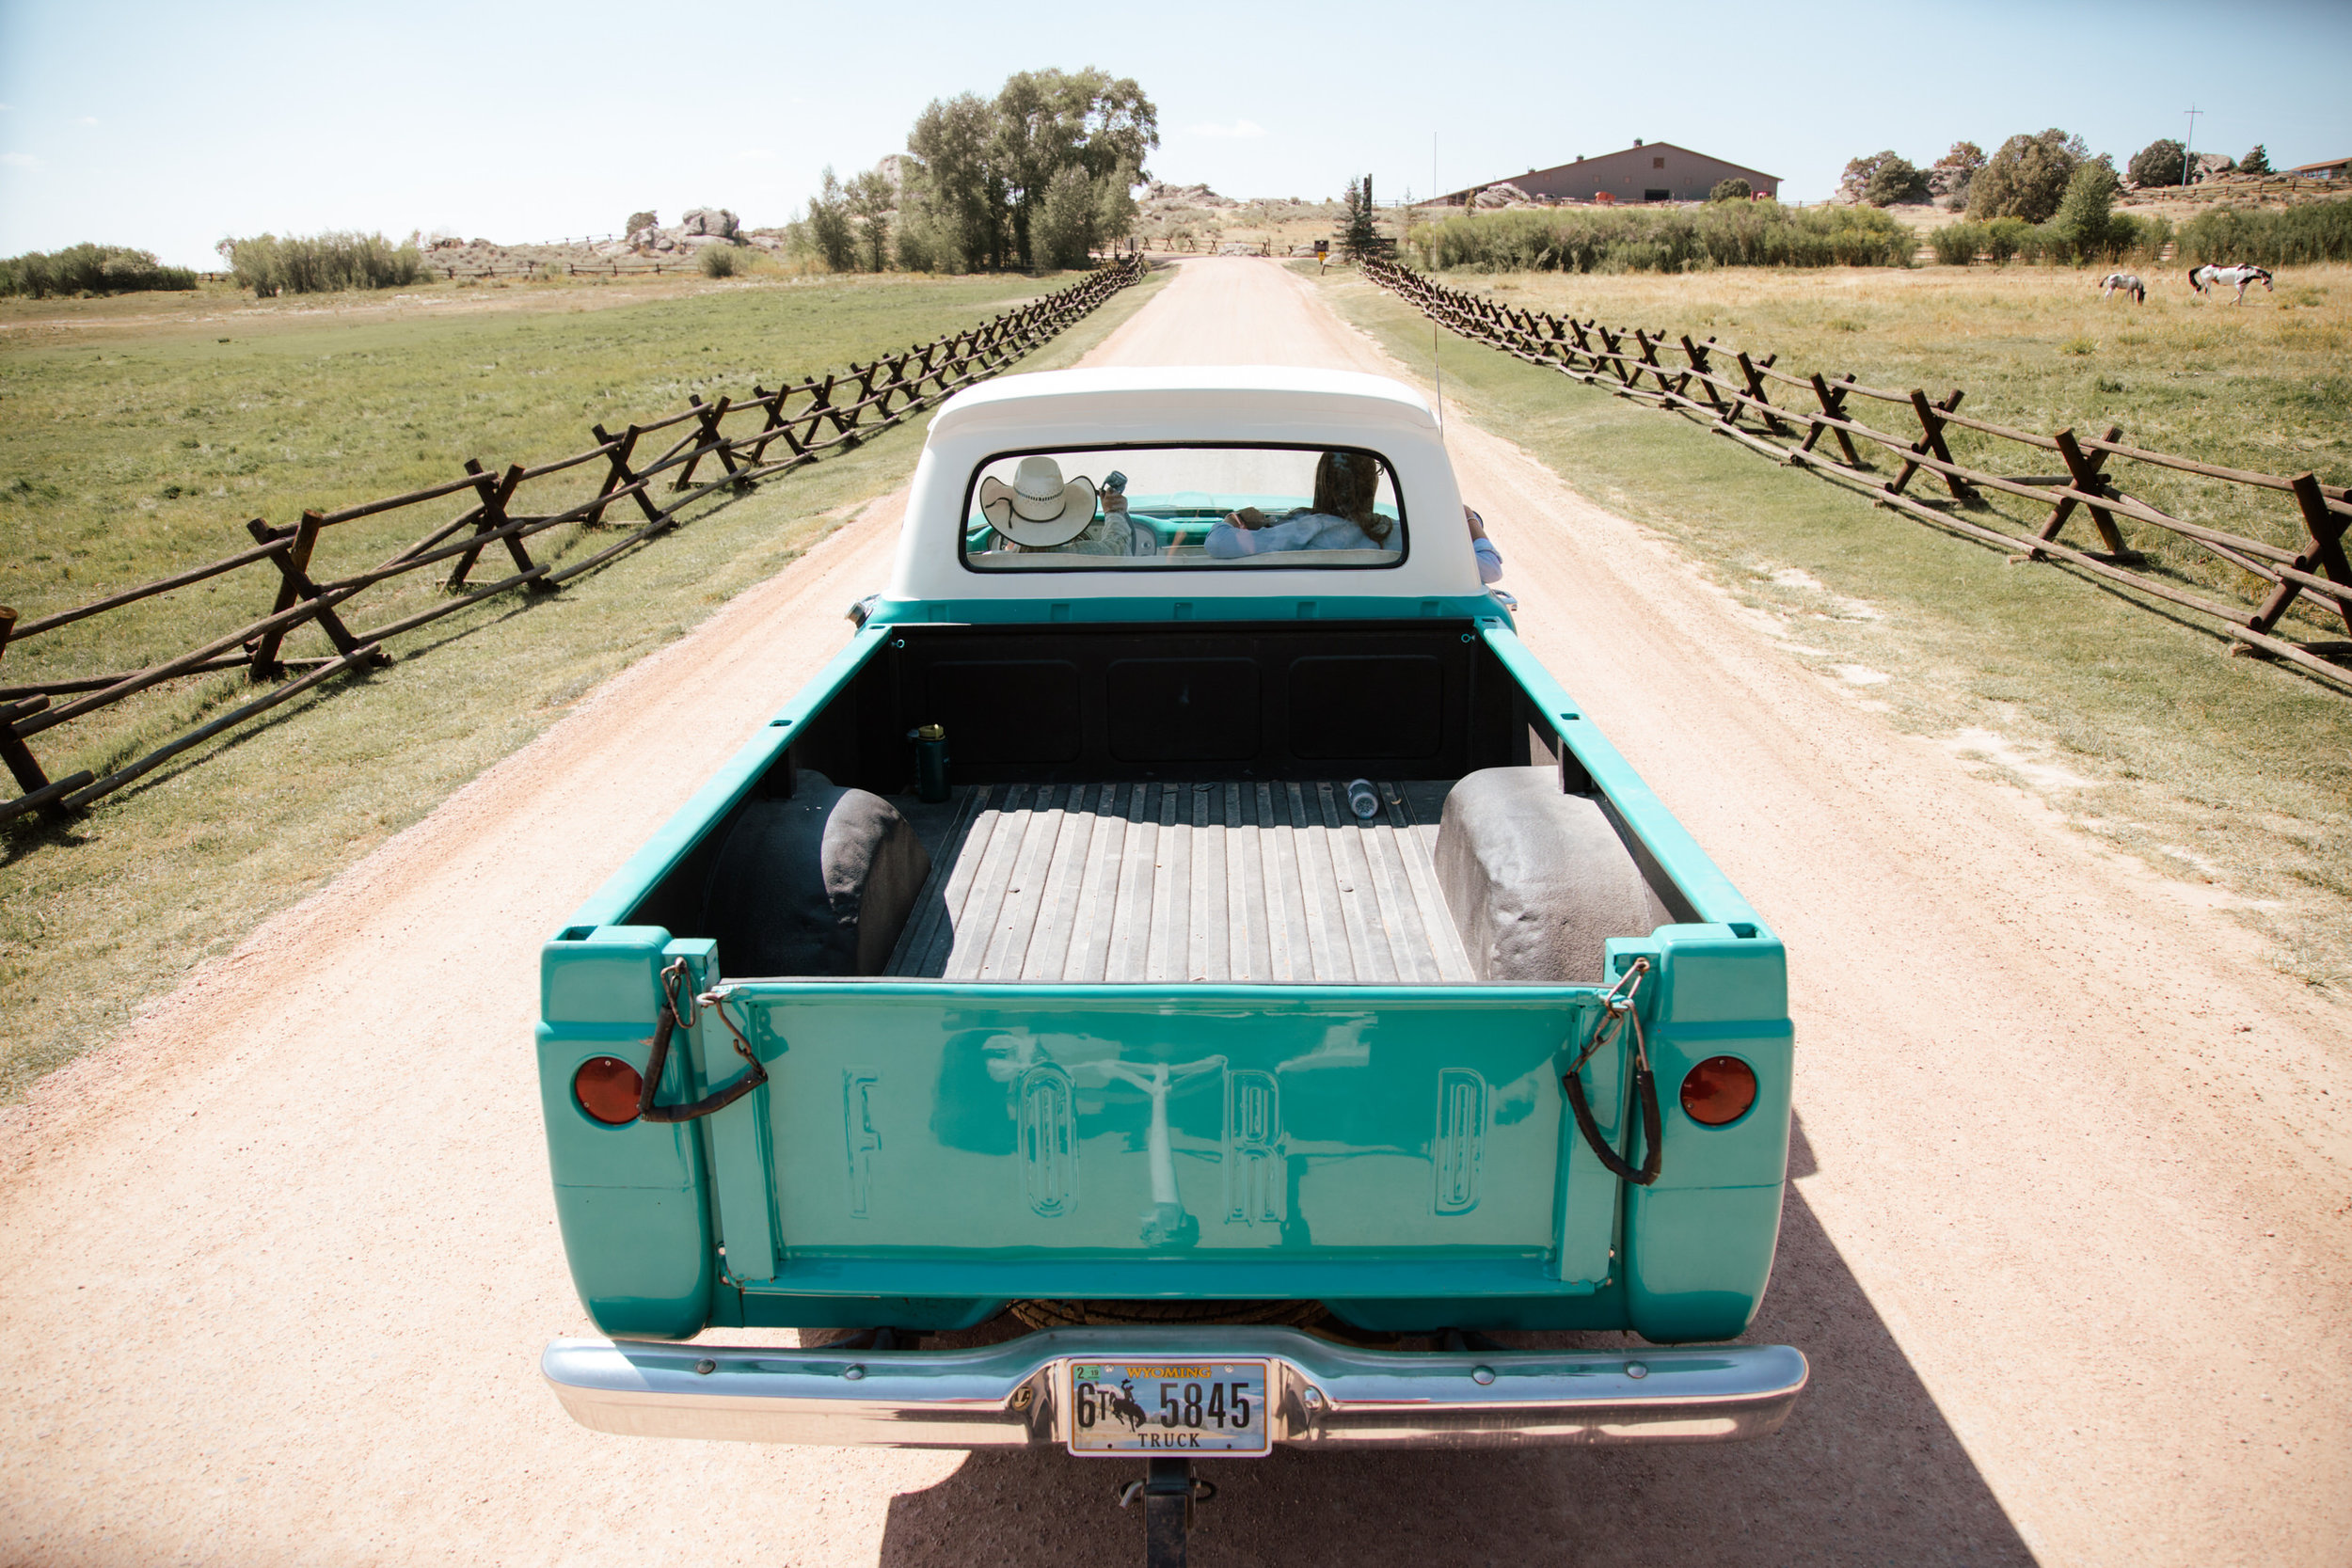 BCR_Old Ford Truck-1.jpg